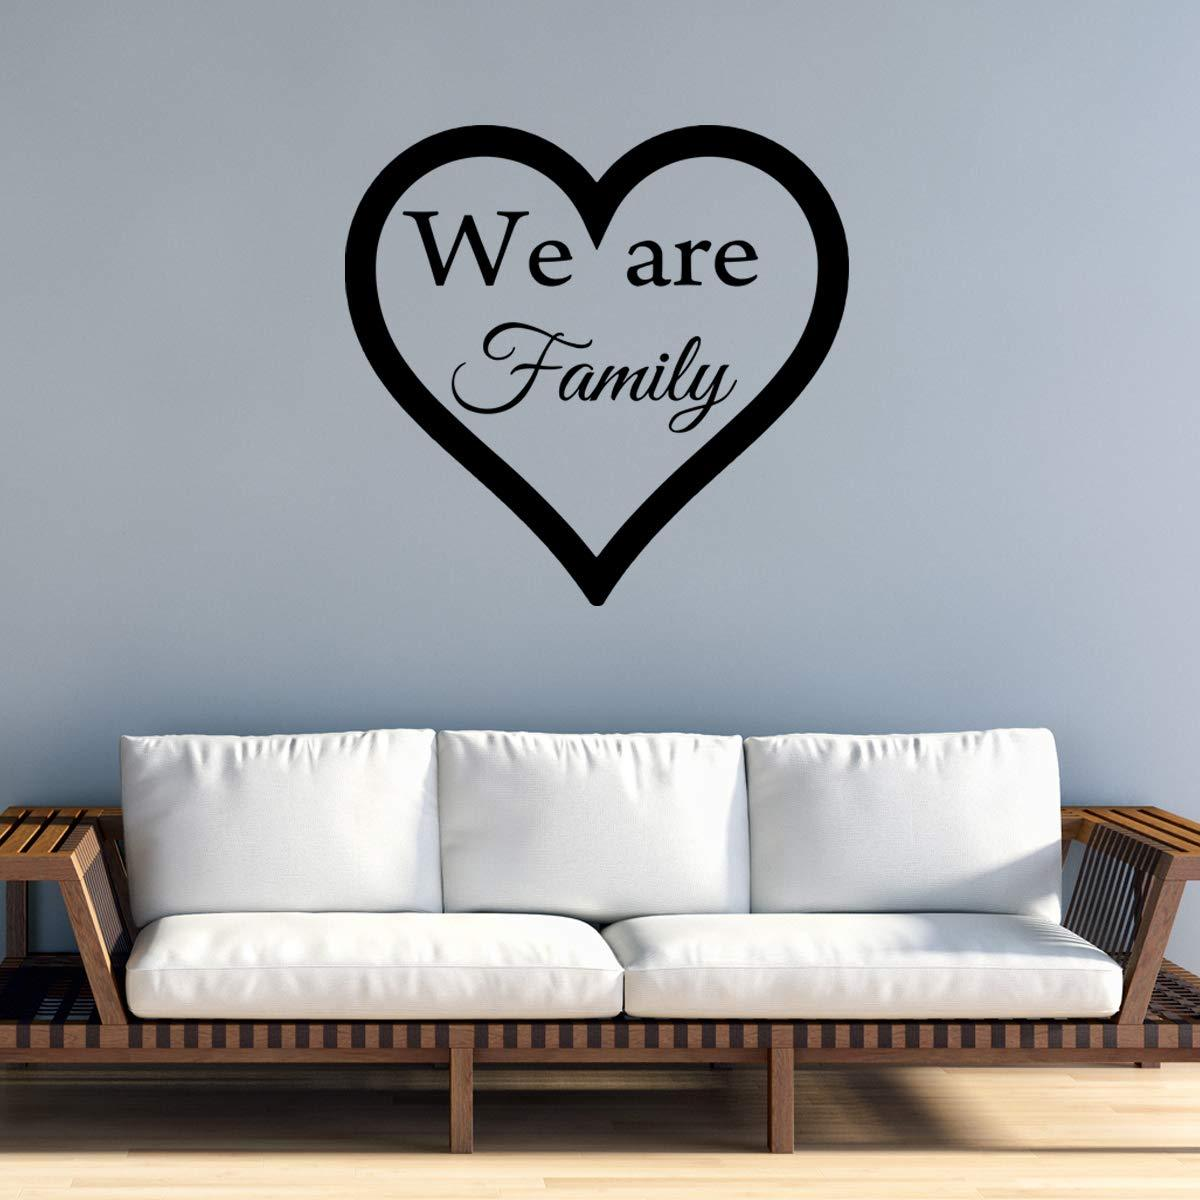 VWAQ We are Family Wall Decal Home Decor Vinyl Quotes Heart Love Wall Art - VWAQ Vinyl Wall Art Quotes and Prints